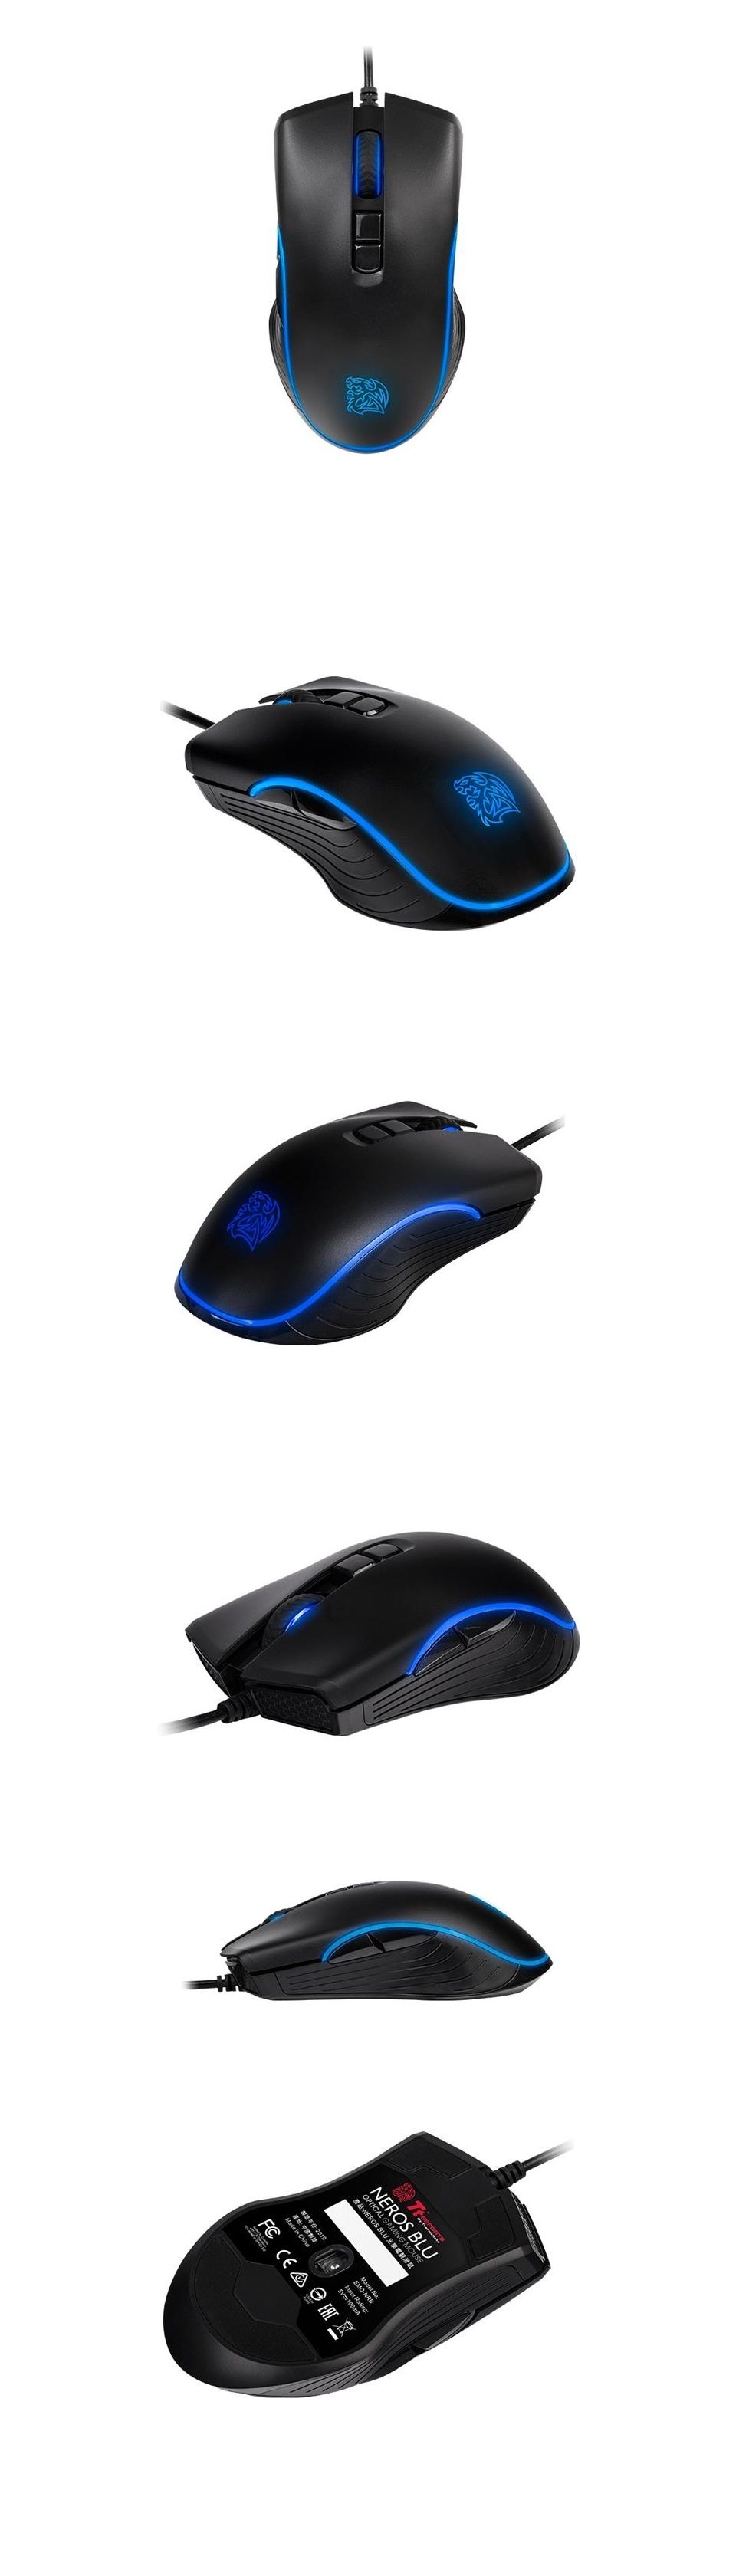 Tt eSPORTS Neros Blu Optical Gaming Mouse product